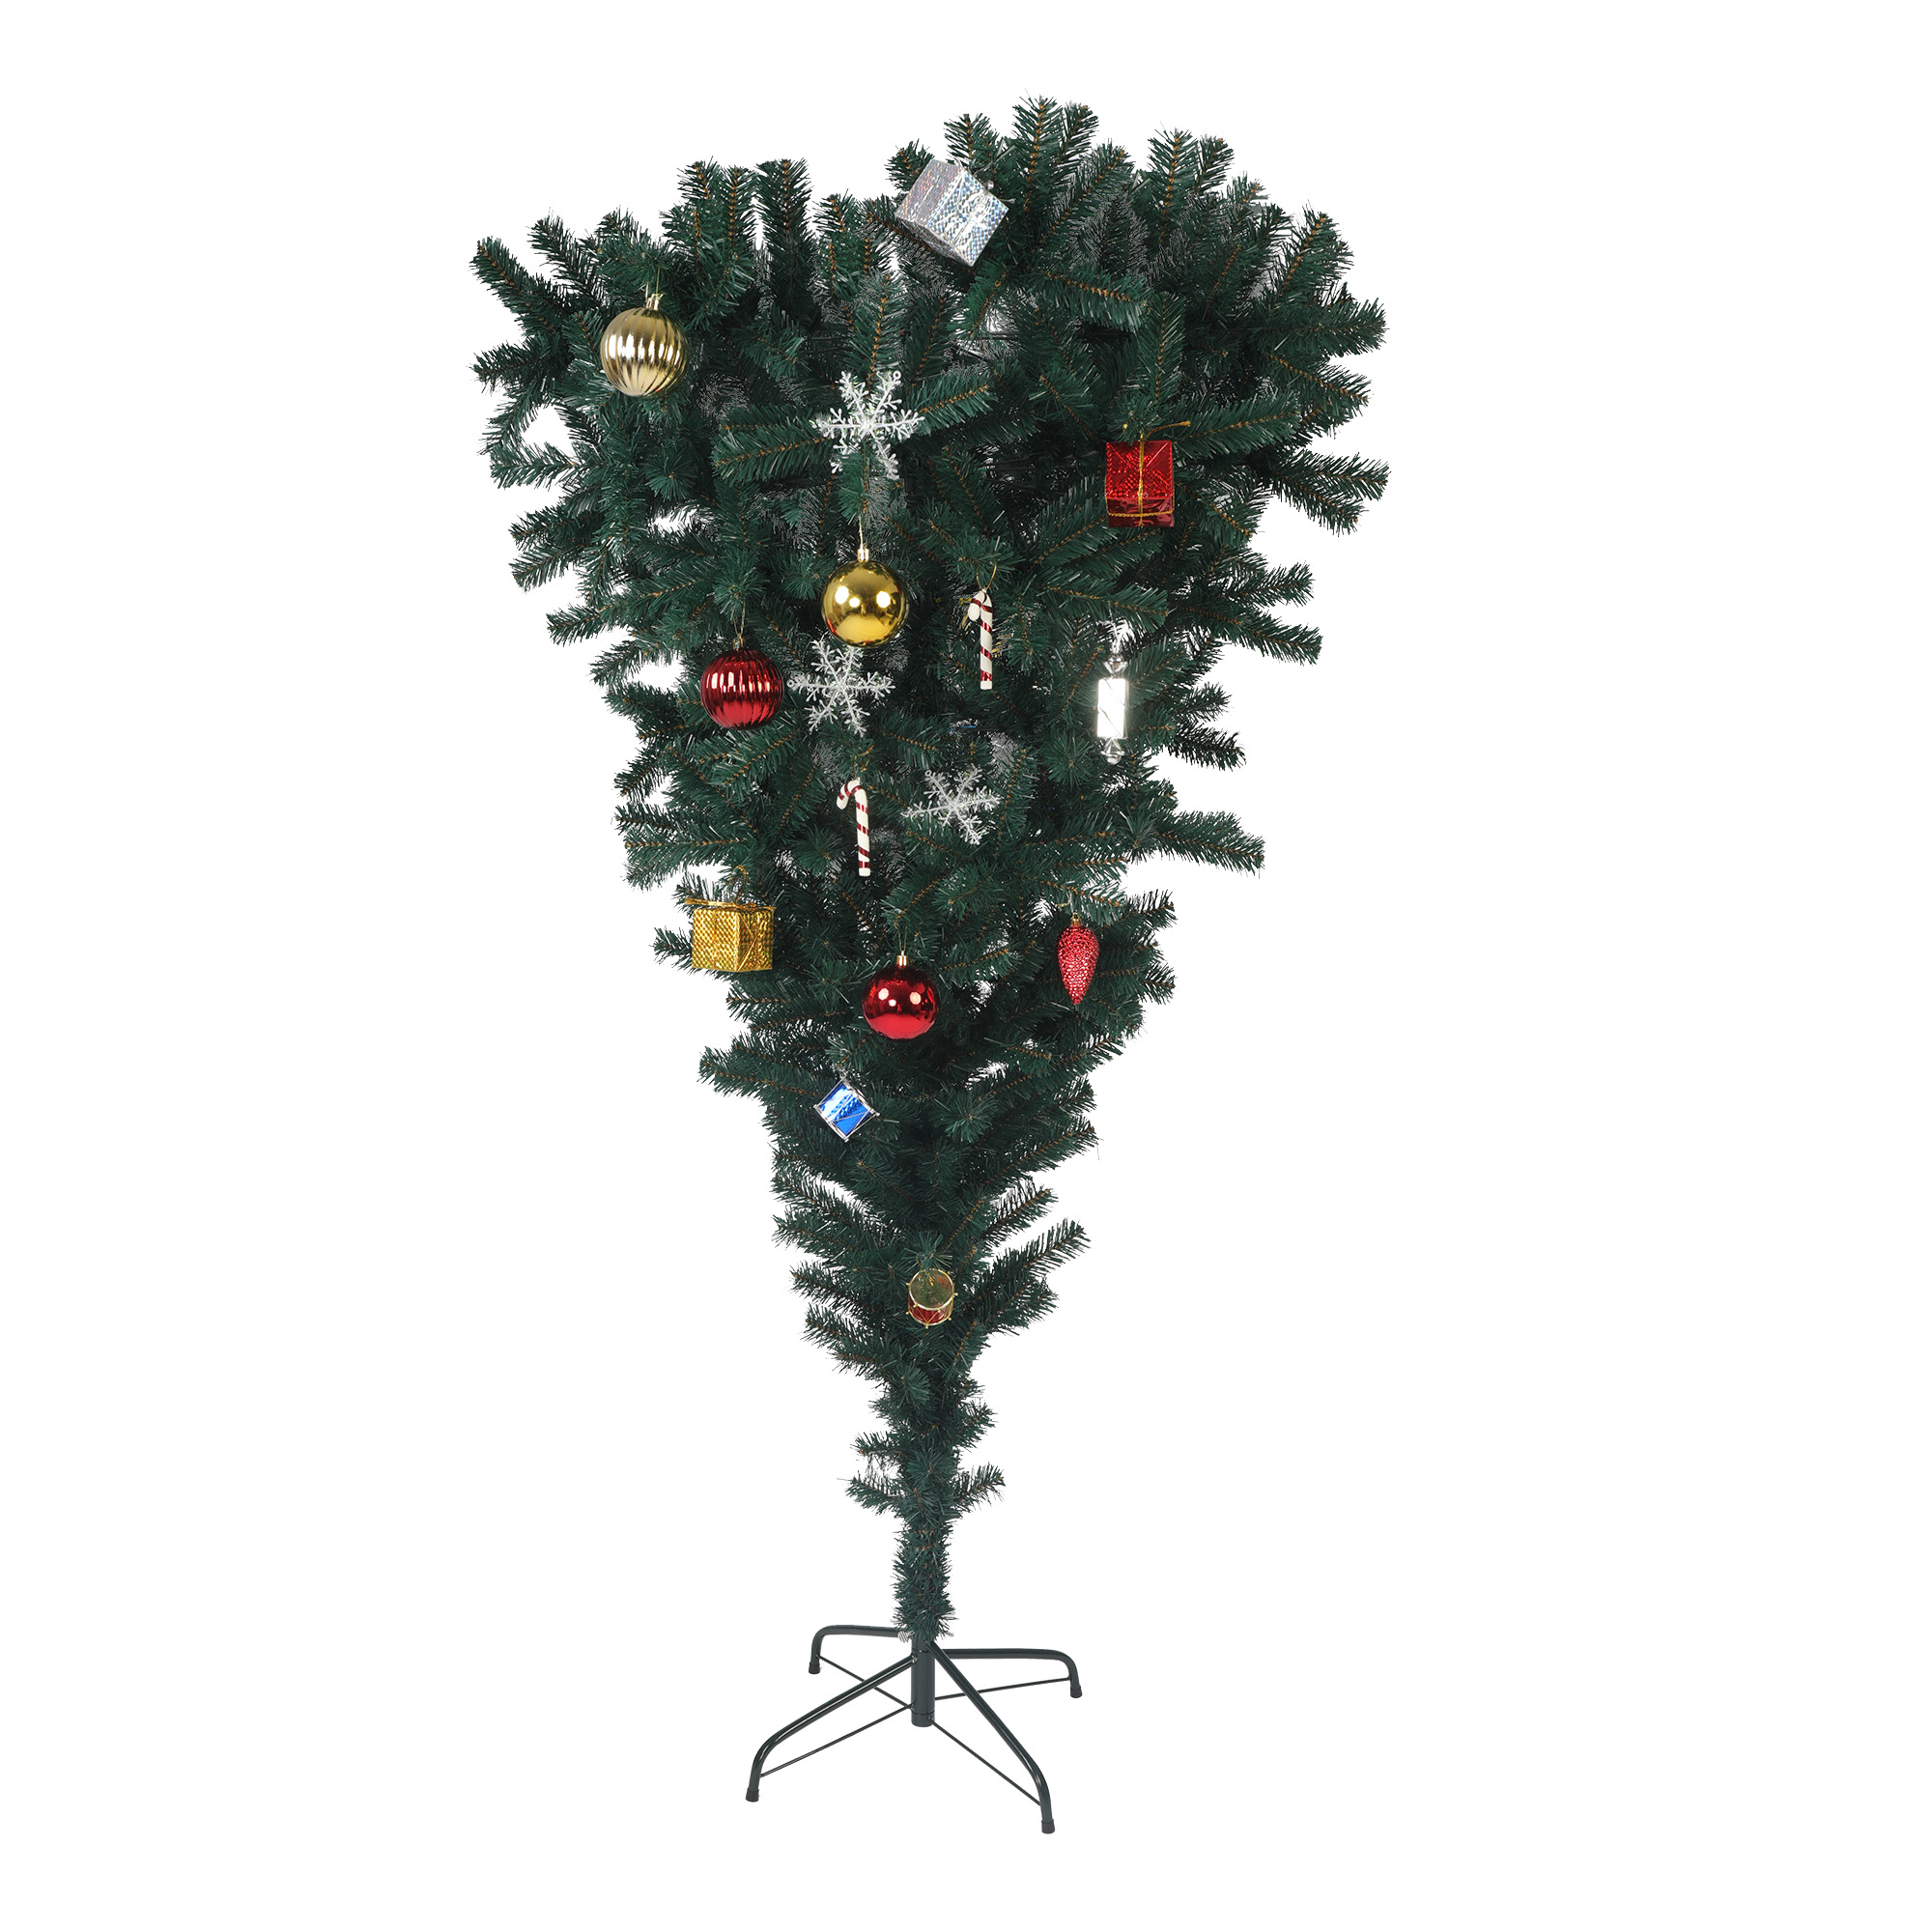 Karmas Product 5 5ft Christmas Tree Upside Down 578 Tips Full Tree With Decorations And Metal Stand For Xmas Day New Year Green Walmart Com Walmart Com